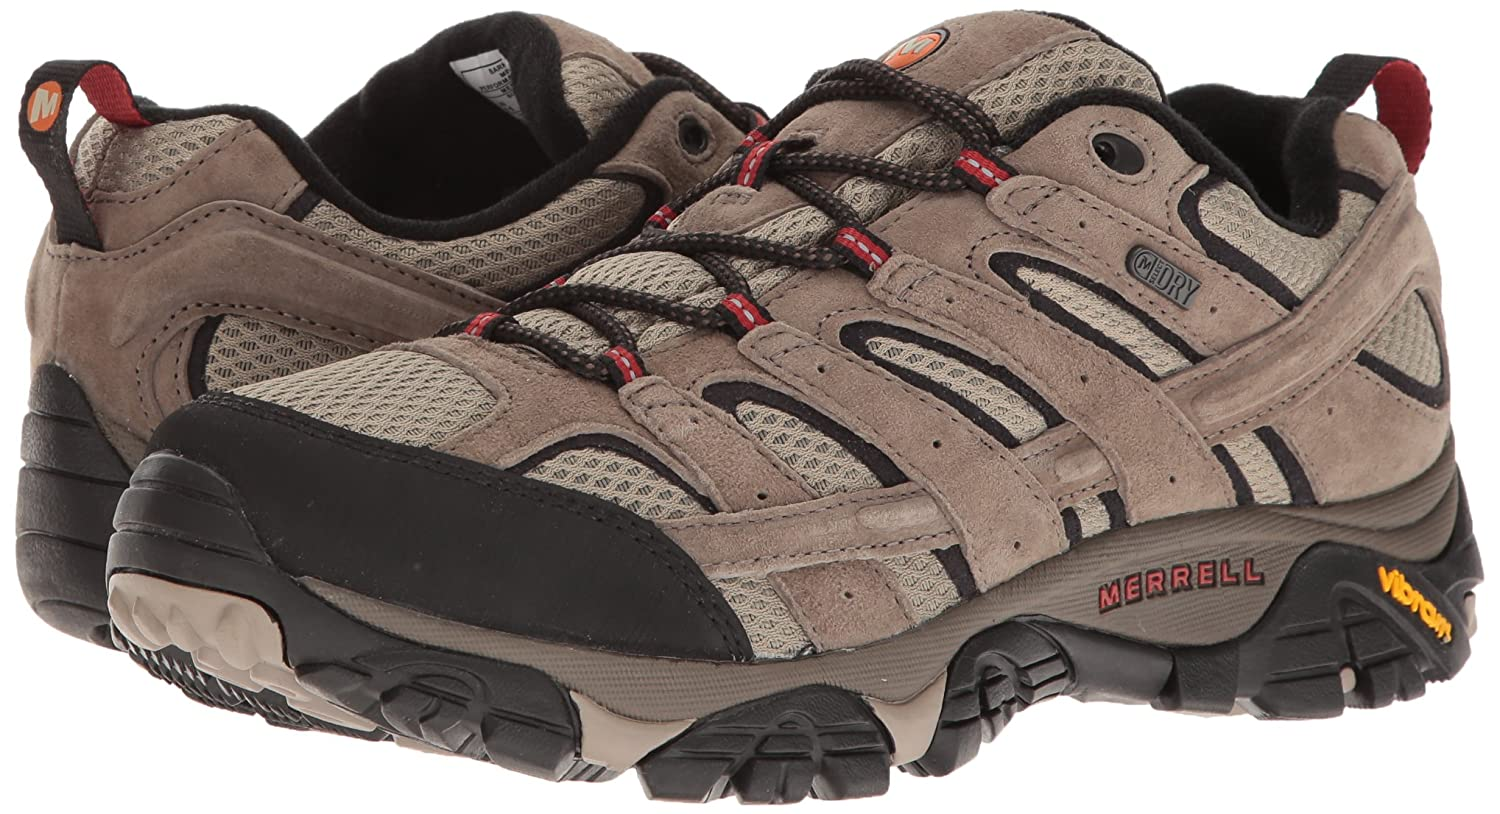 Image result for Merrell Moab 2 WP inurl:amazon